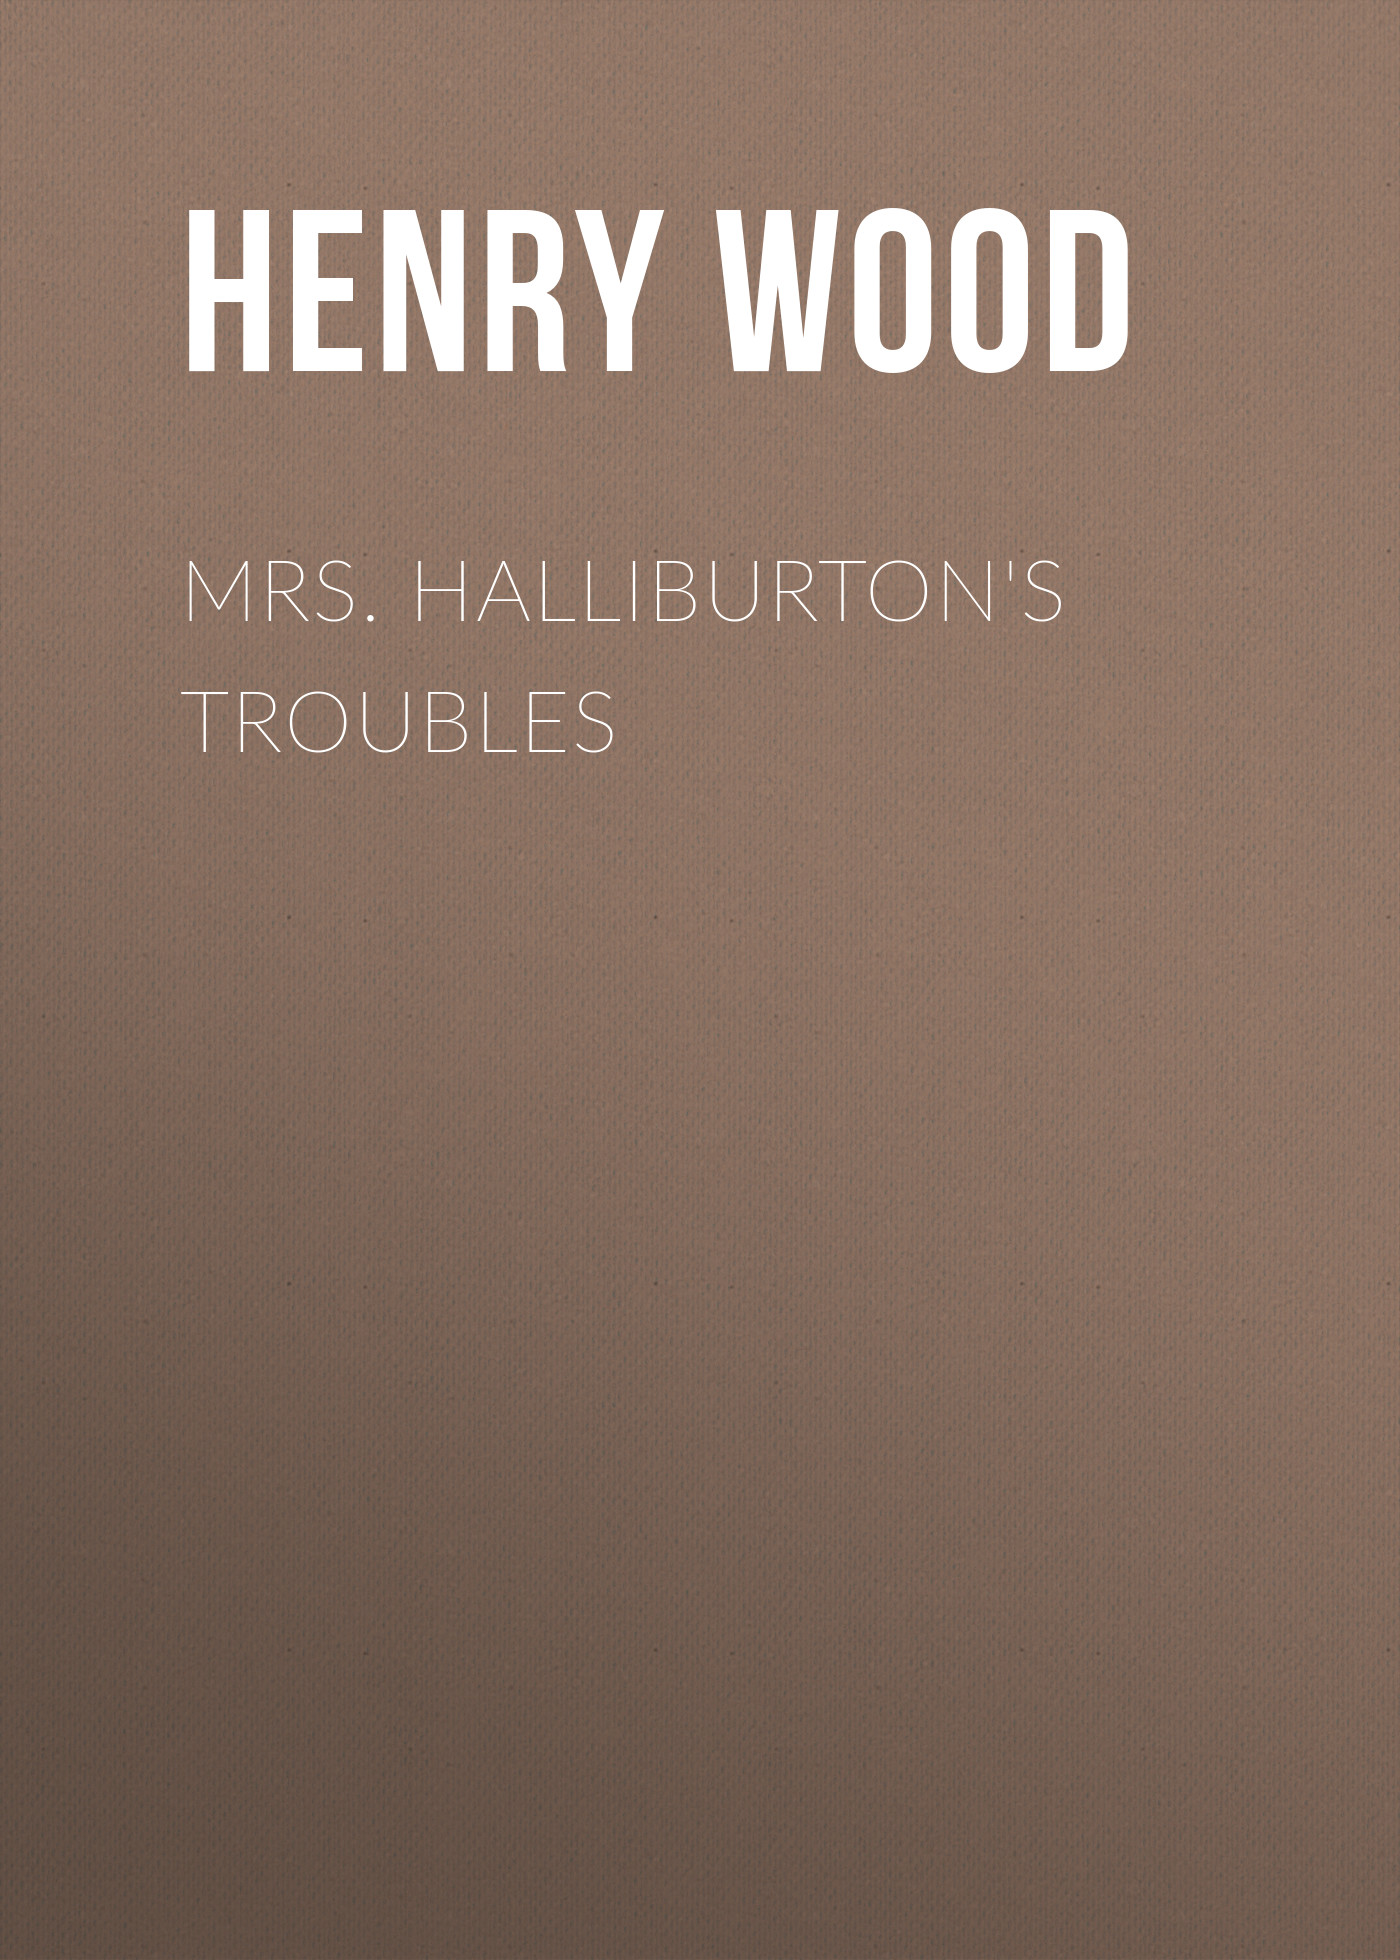 Henry Wood Mrs. Halliburton's Troubles henry wood trevlyn hold